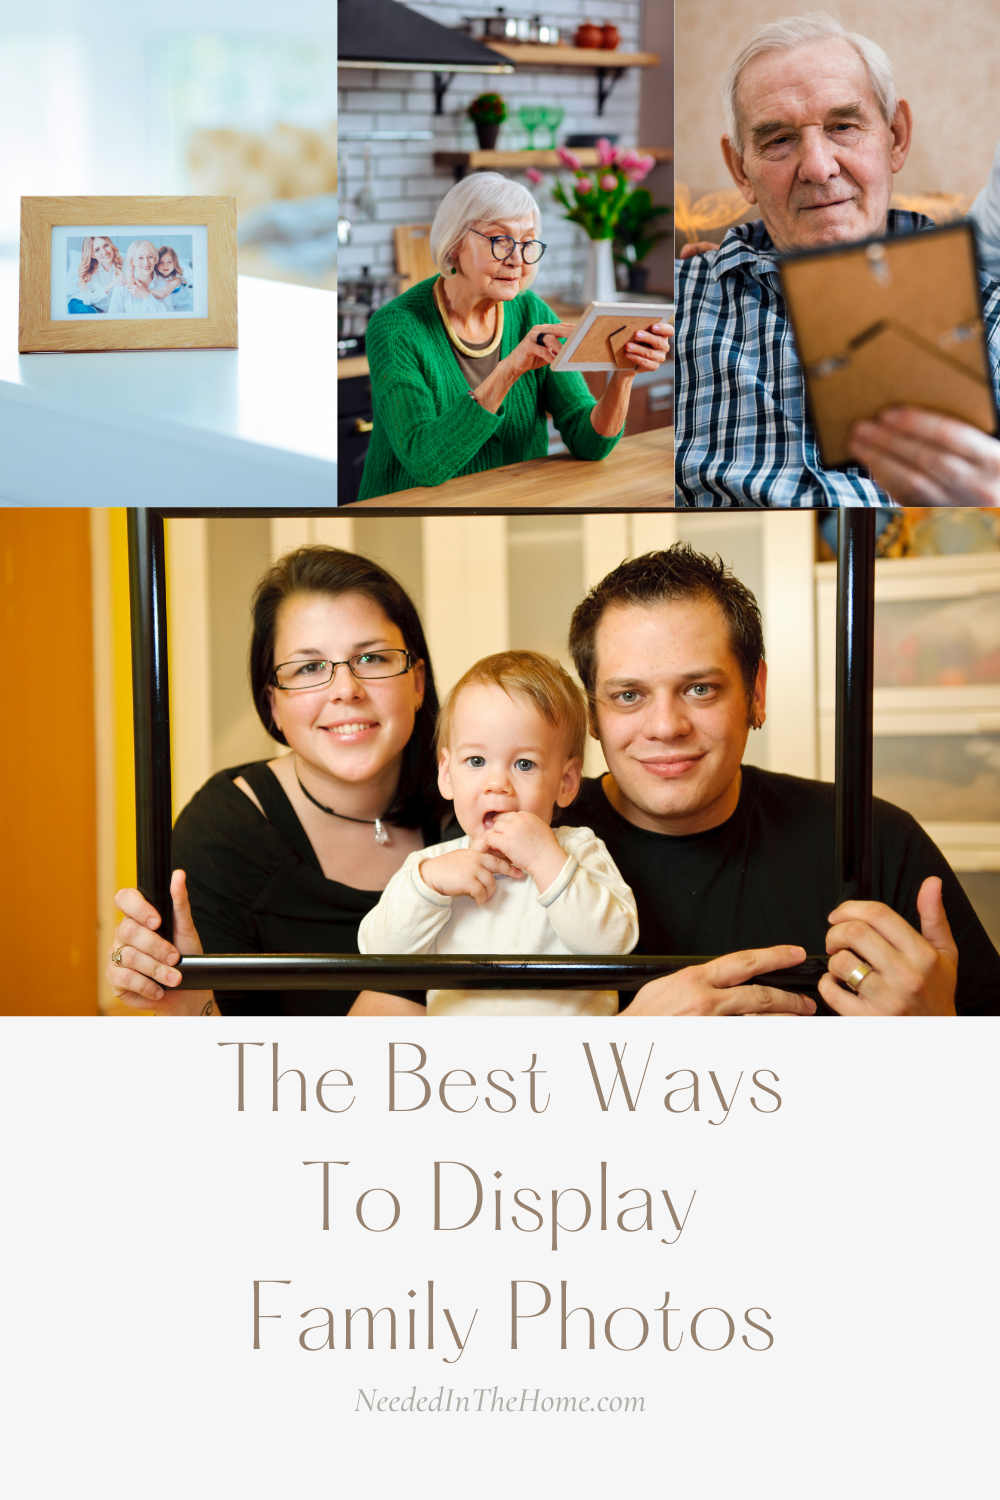 pinterest-pin-description The Best Ways To Display Family Photos picture frames grandpa grandma mother son father neededinthehome